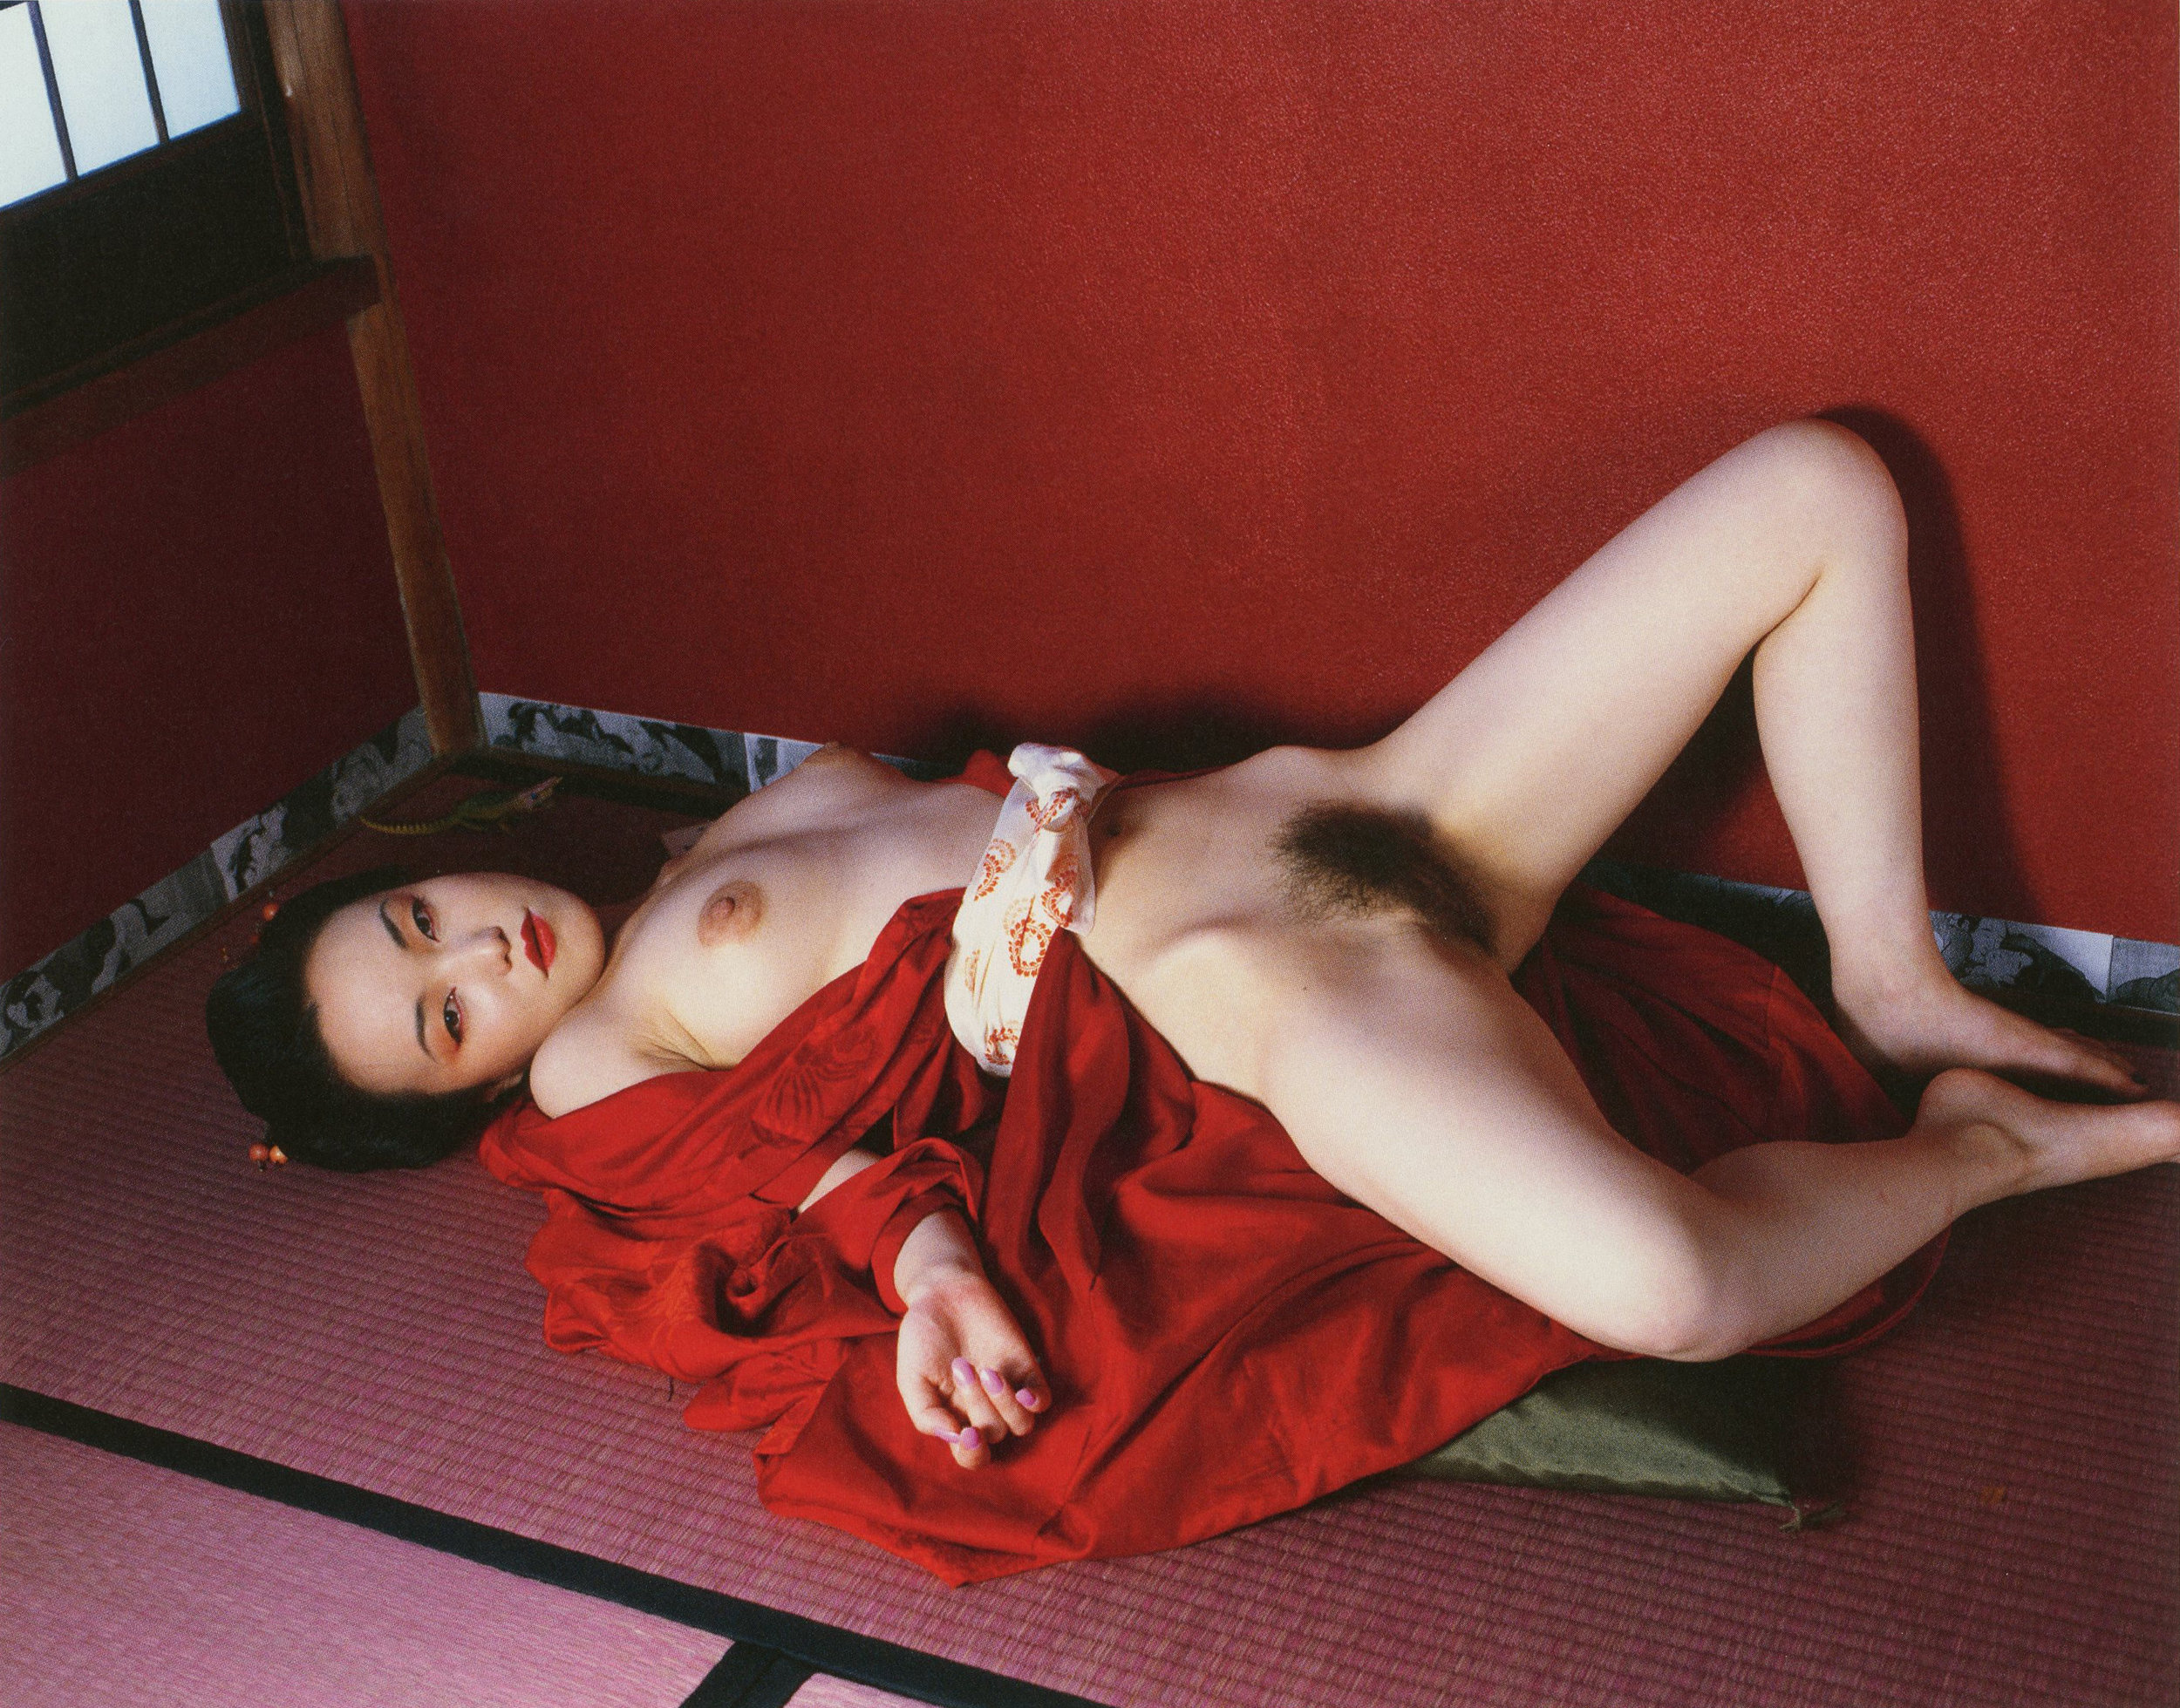 © Nobuyoshi Araki,  Komari from L'Amant d'aout (Suicide in Tokyo), 2002  Courtesy of Private Collection